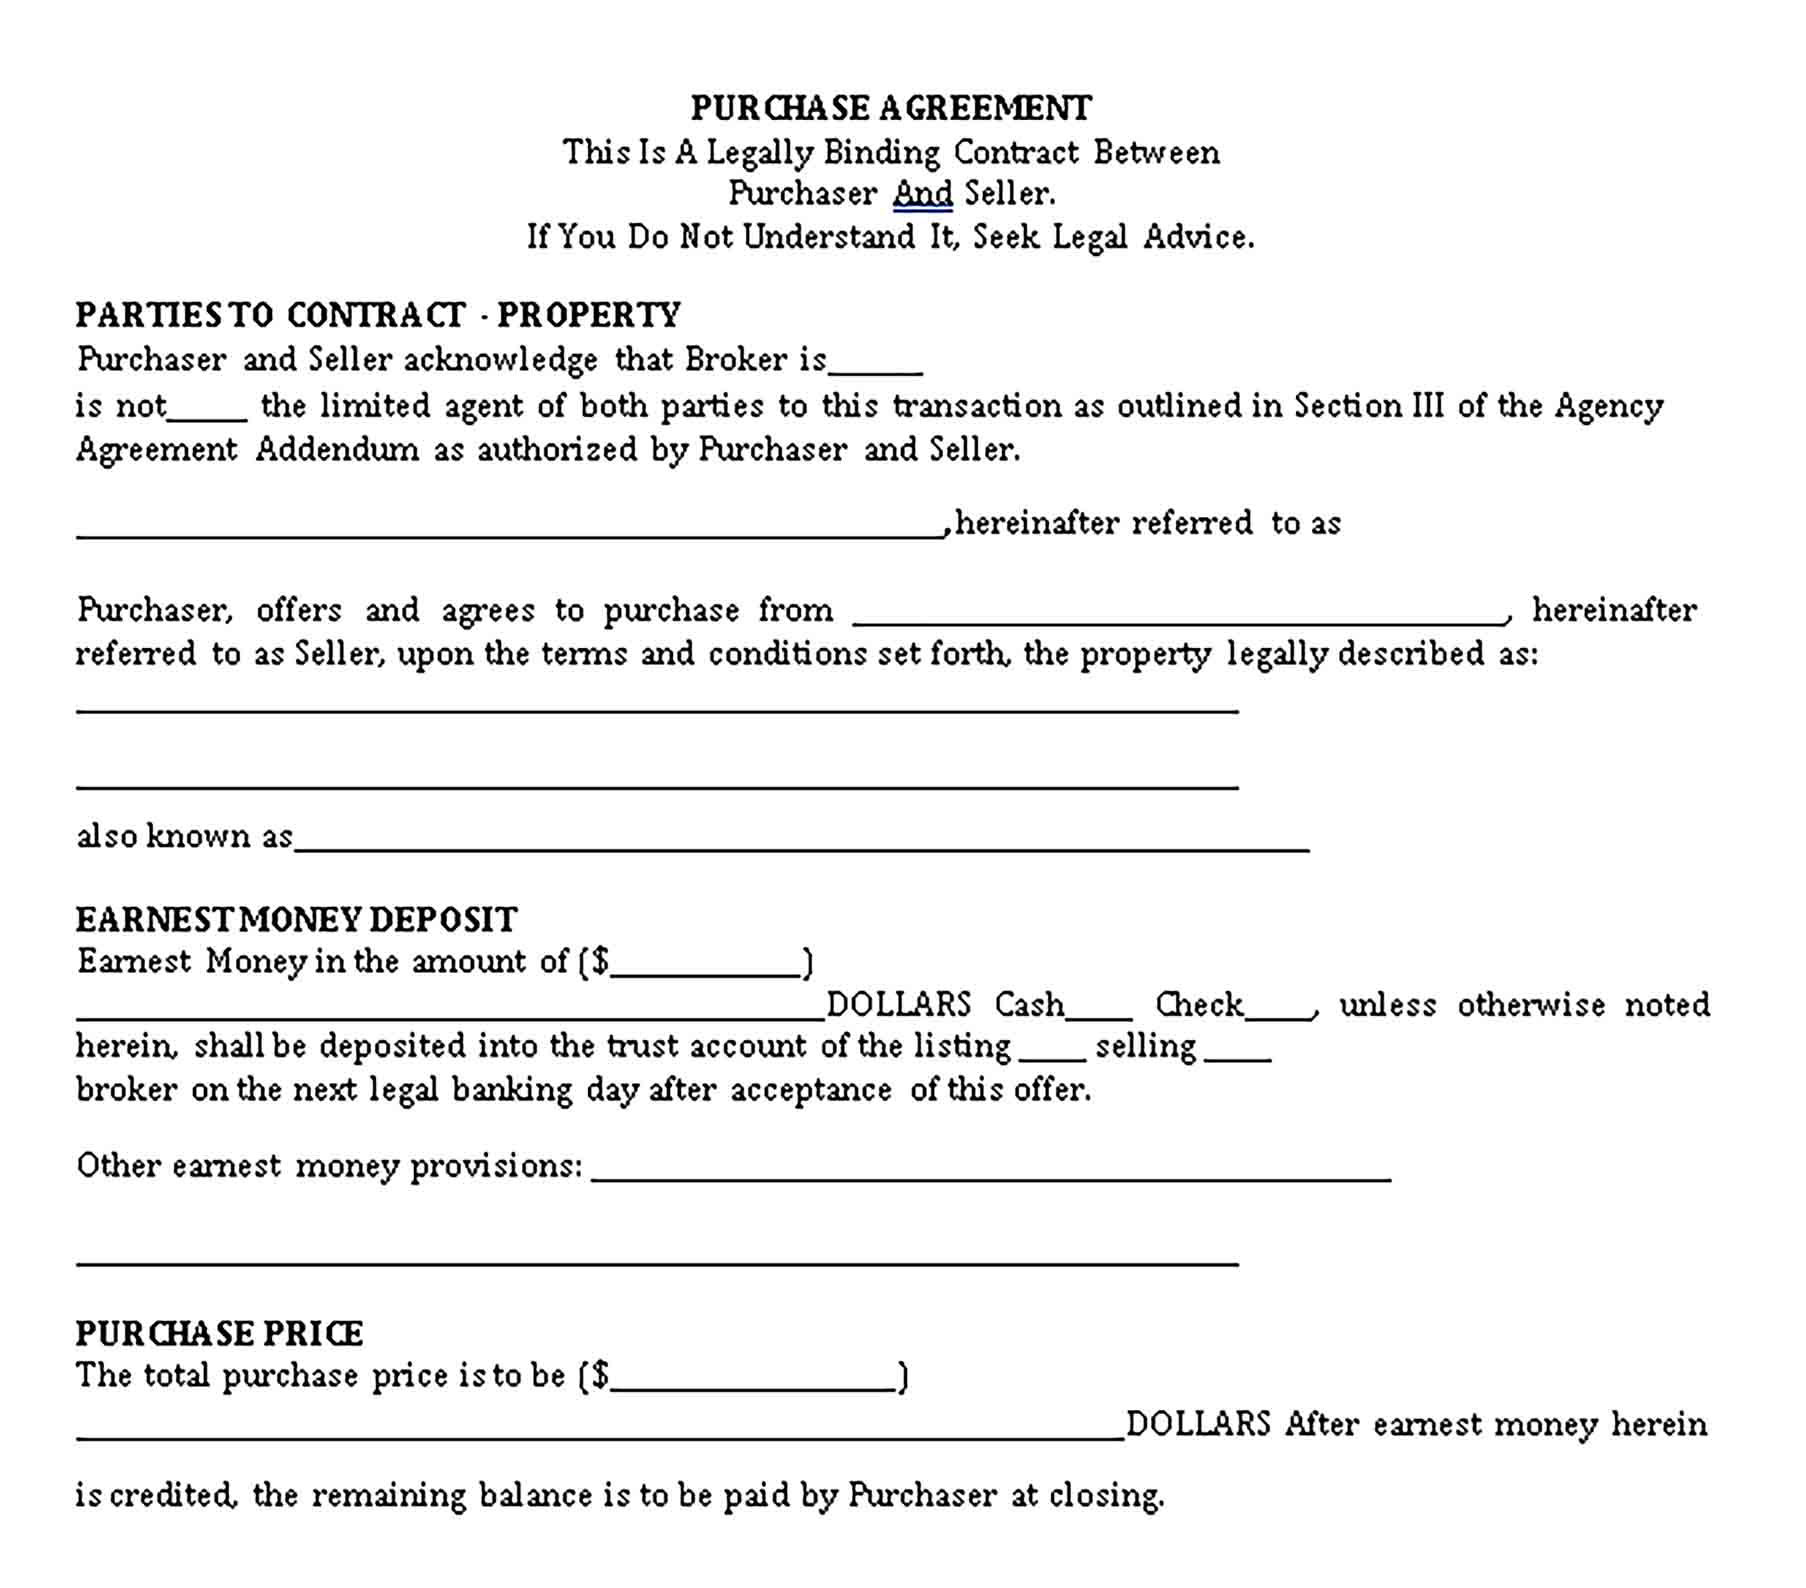 Templates purchase agreement1 Sample